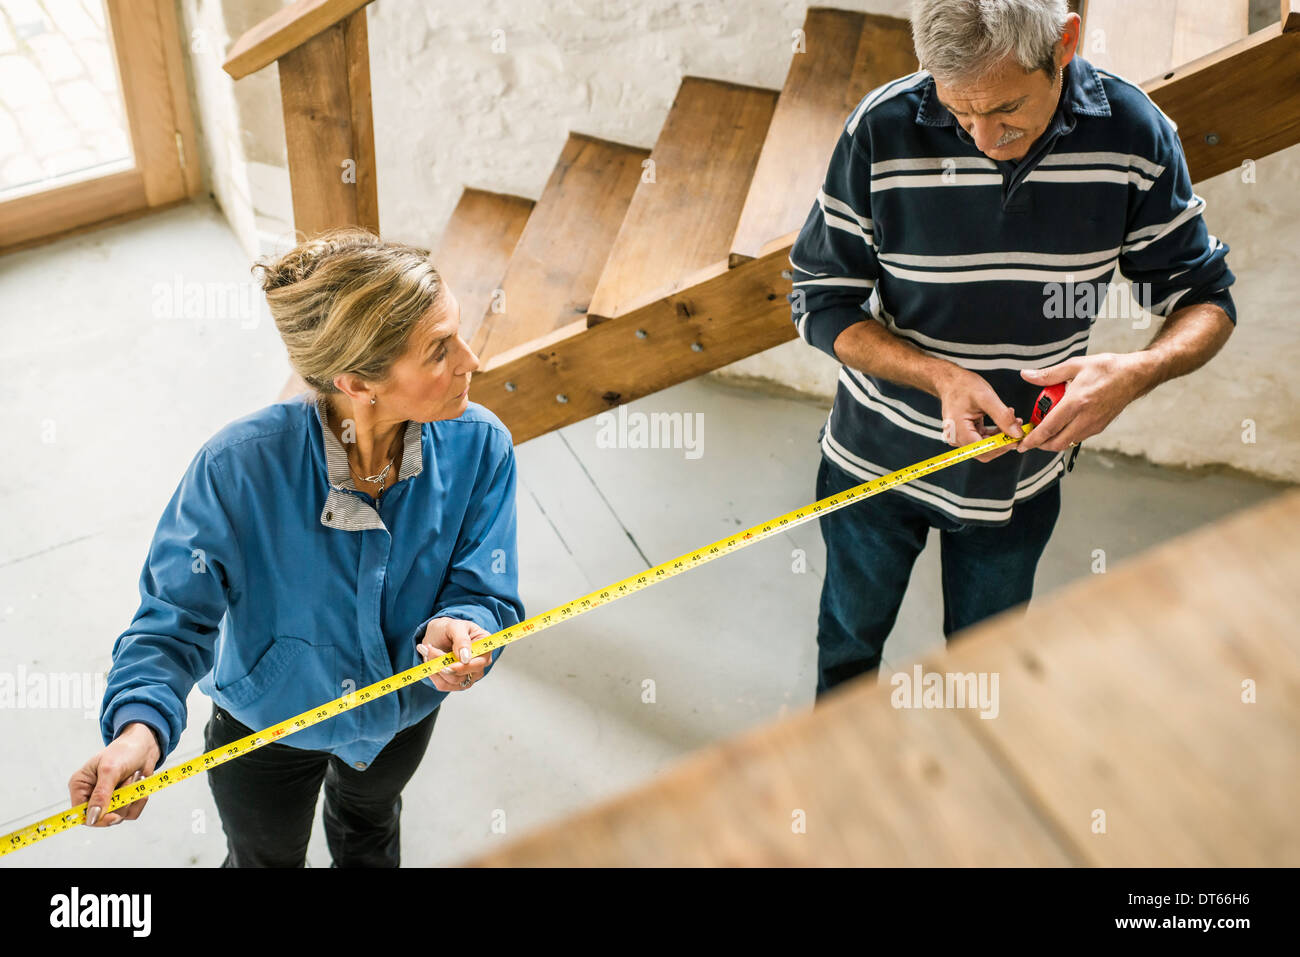 Senior couple doing DIY, using measuring tape - Stock Image